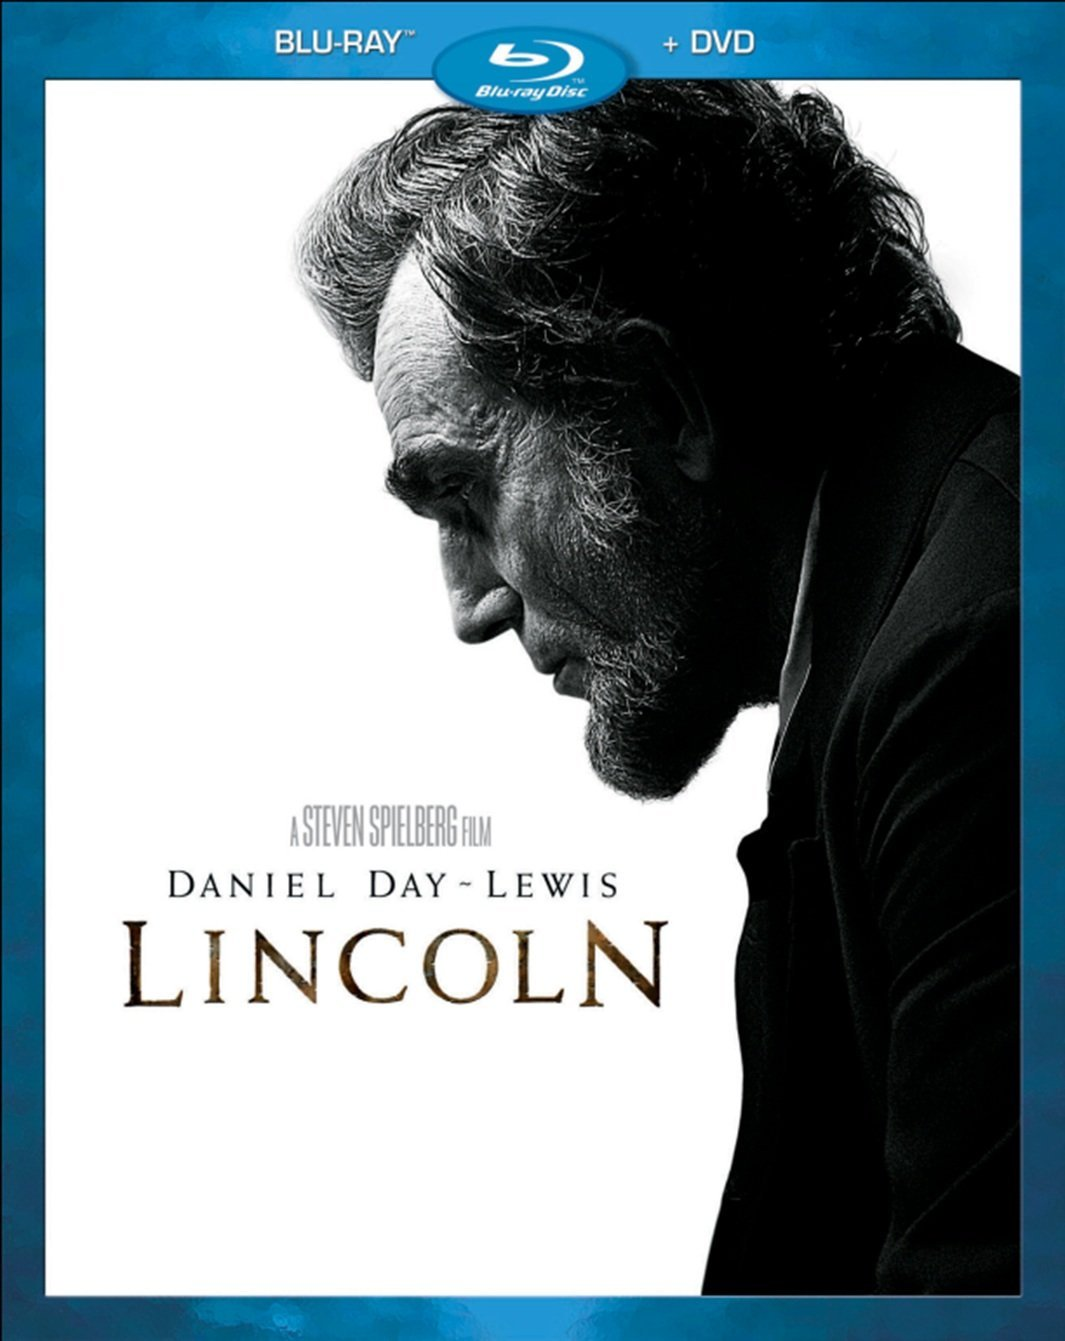 LINCOLN Blu-ray/DVD Box Art